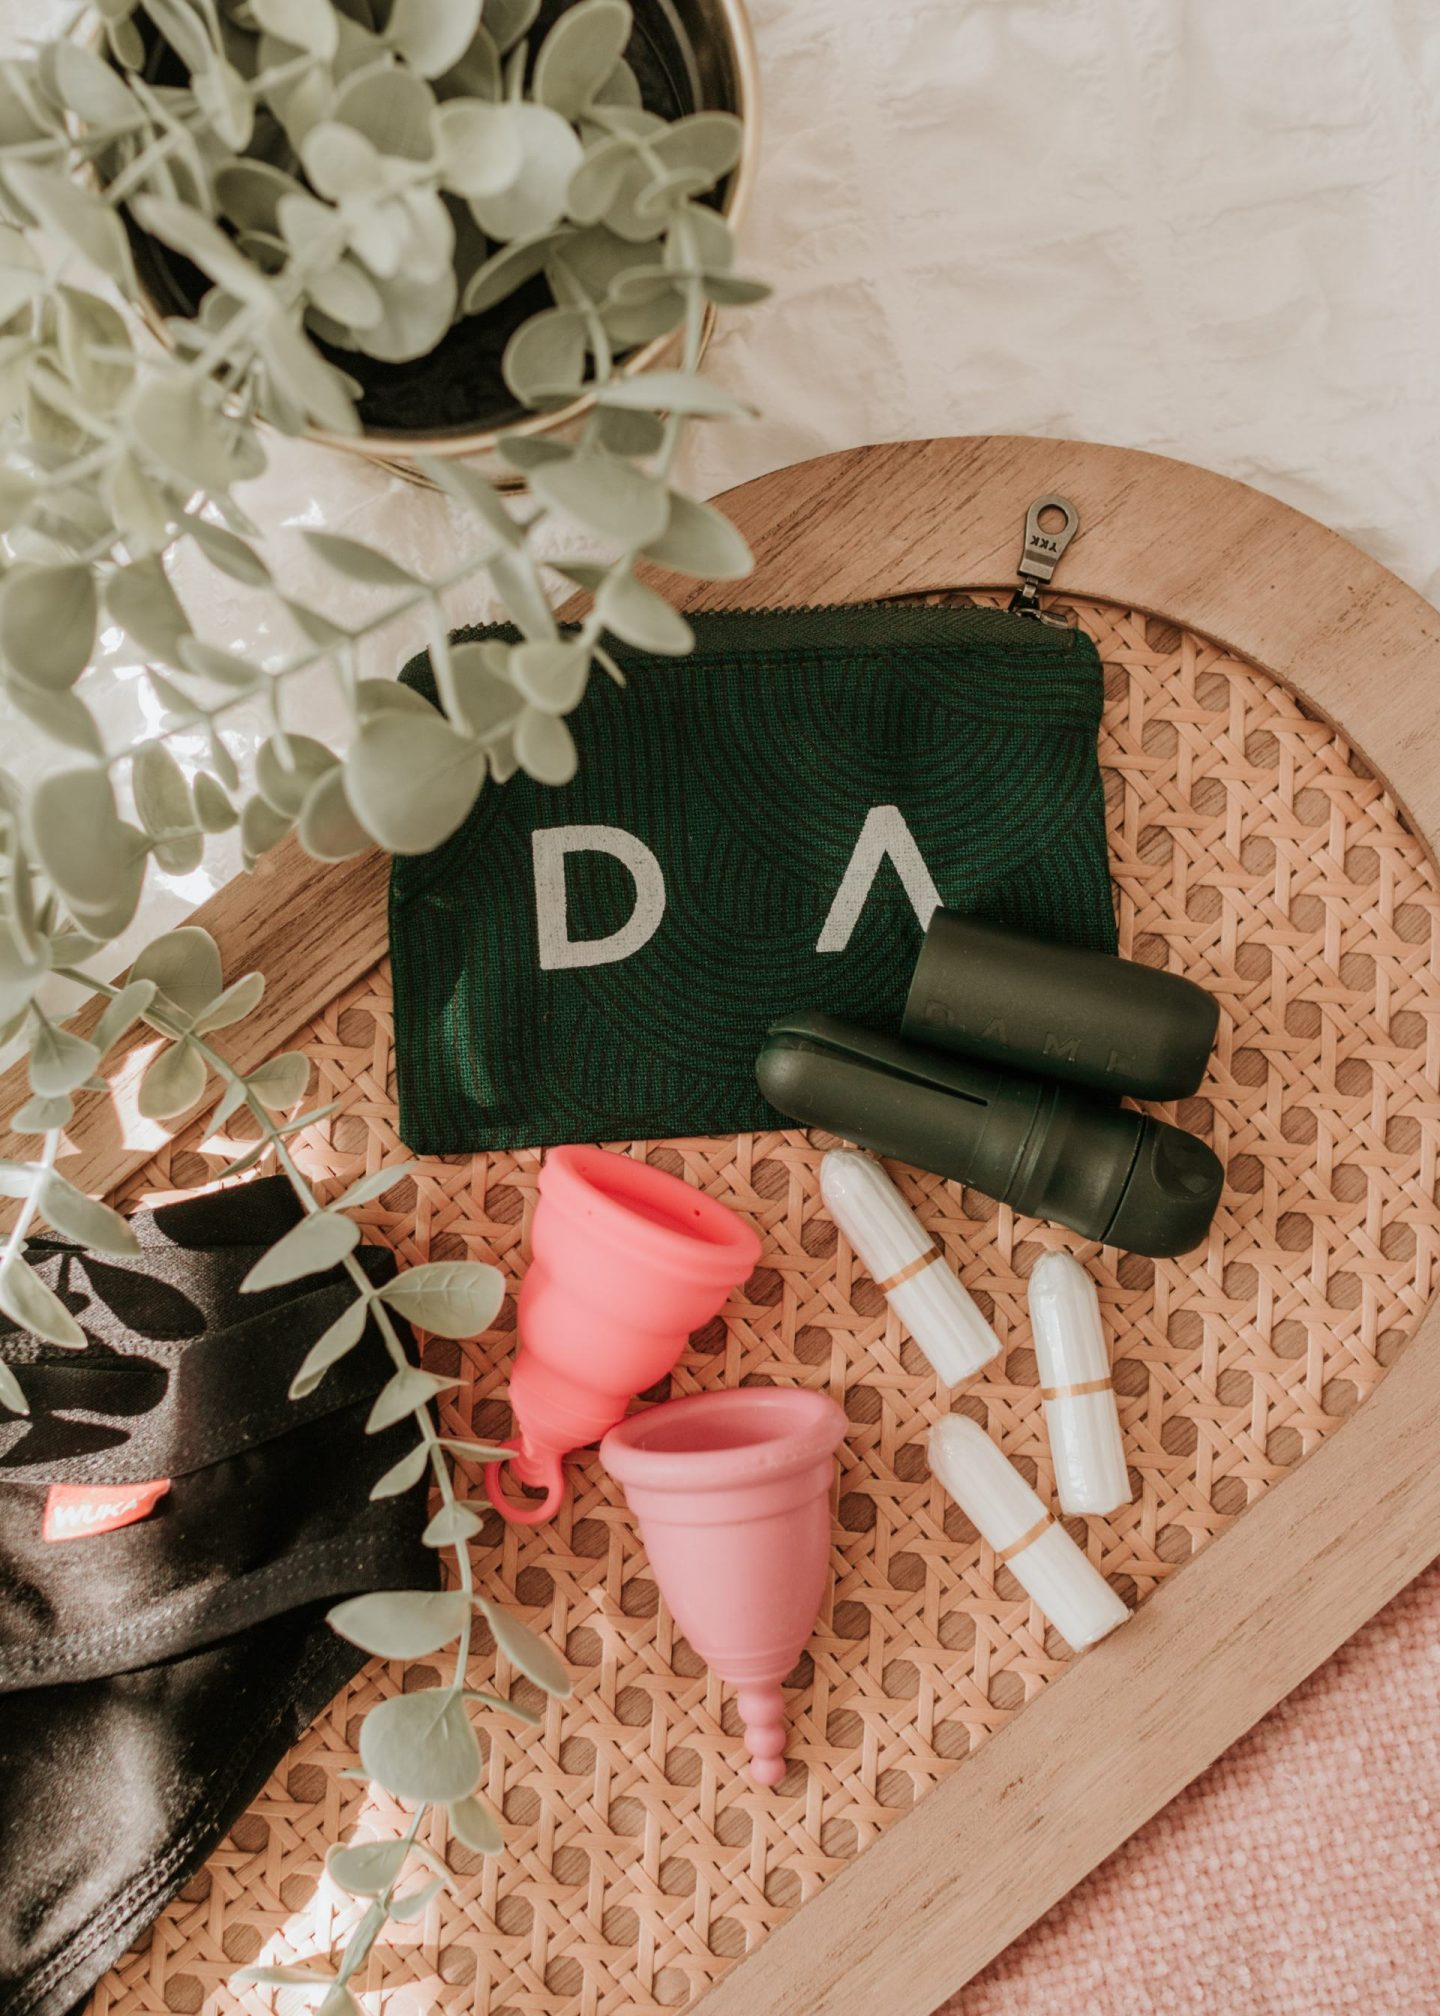 Flatlay image showing a re-useable tampon applicator, organic tampons, menstrual cups and period pants laid on a ratten tray.